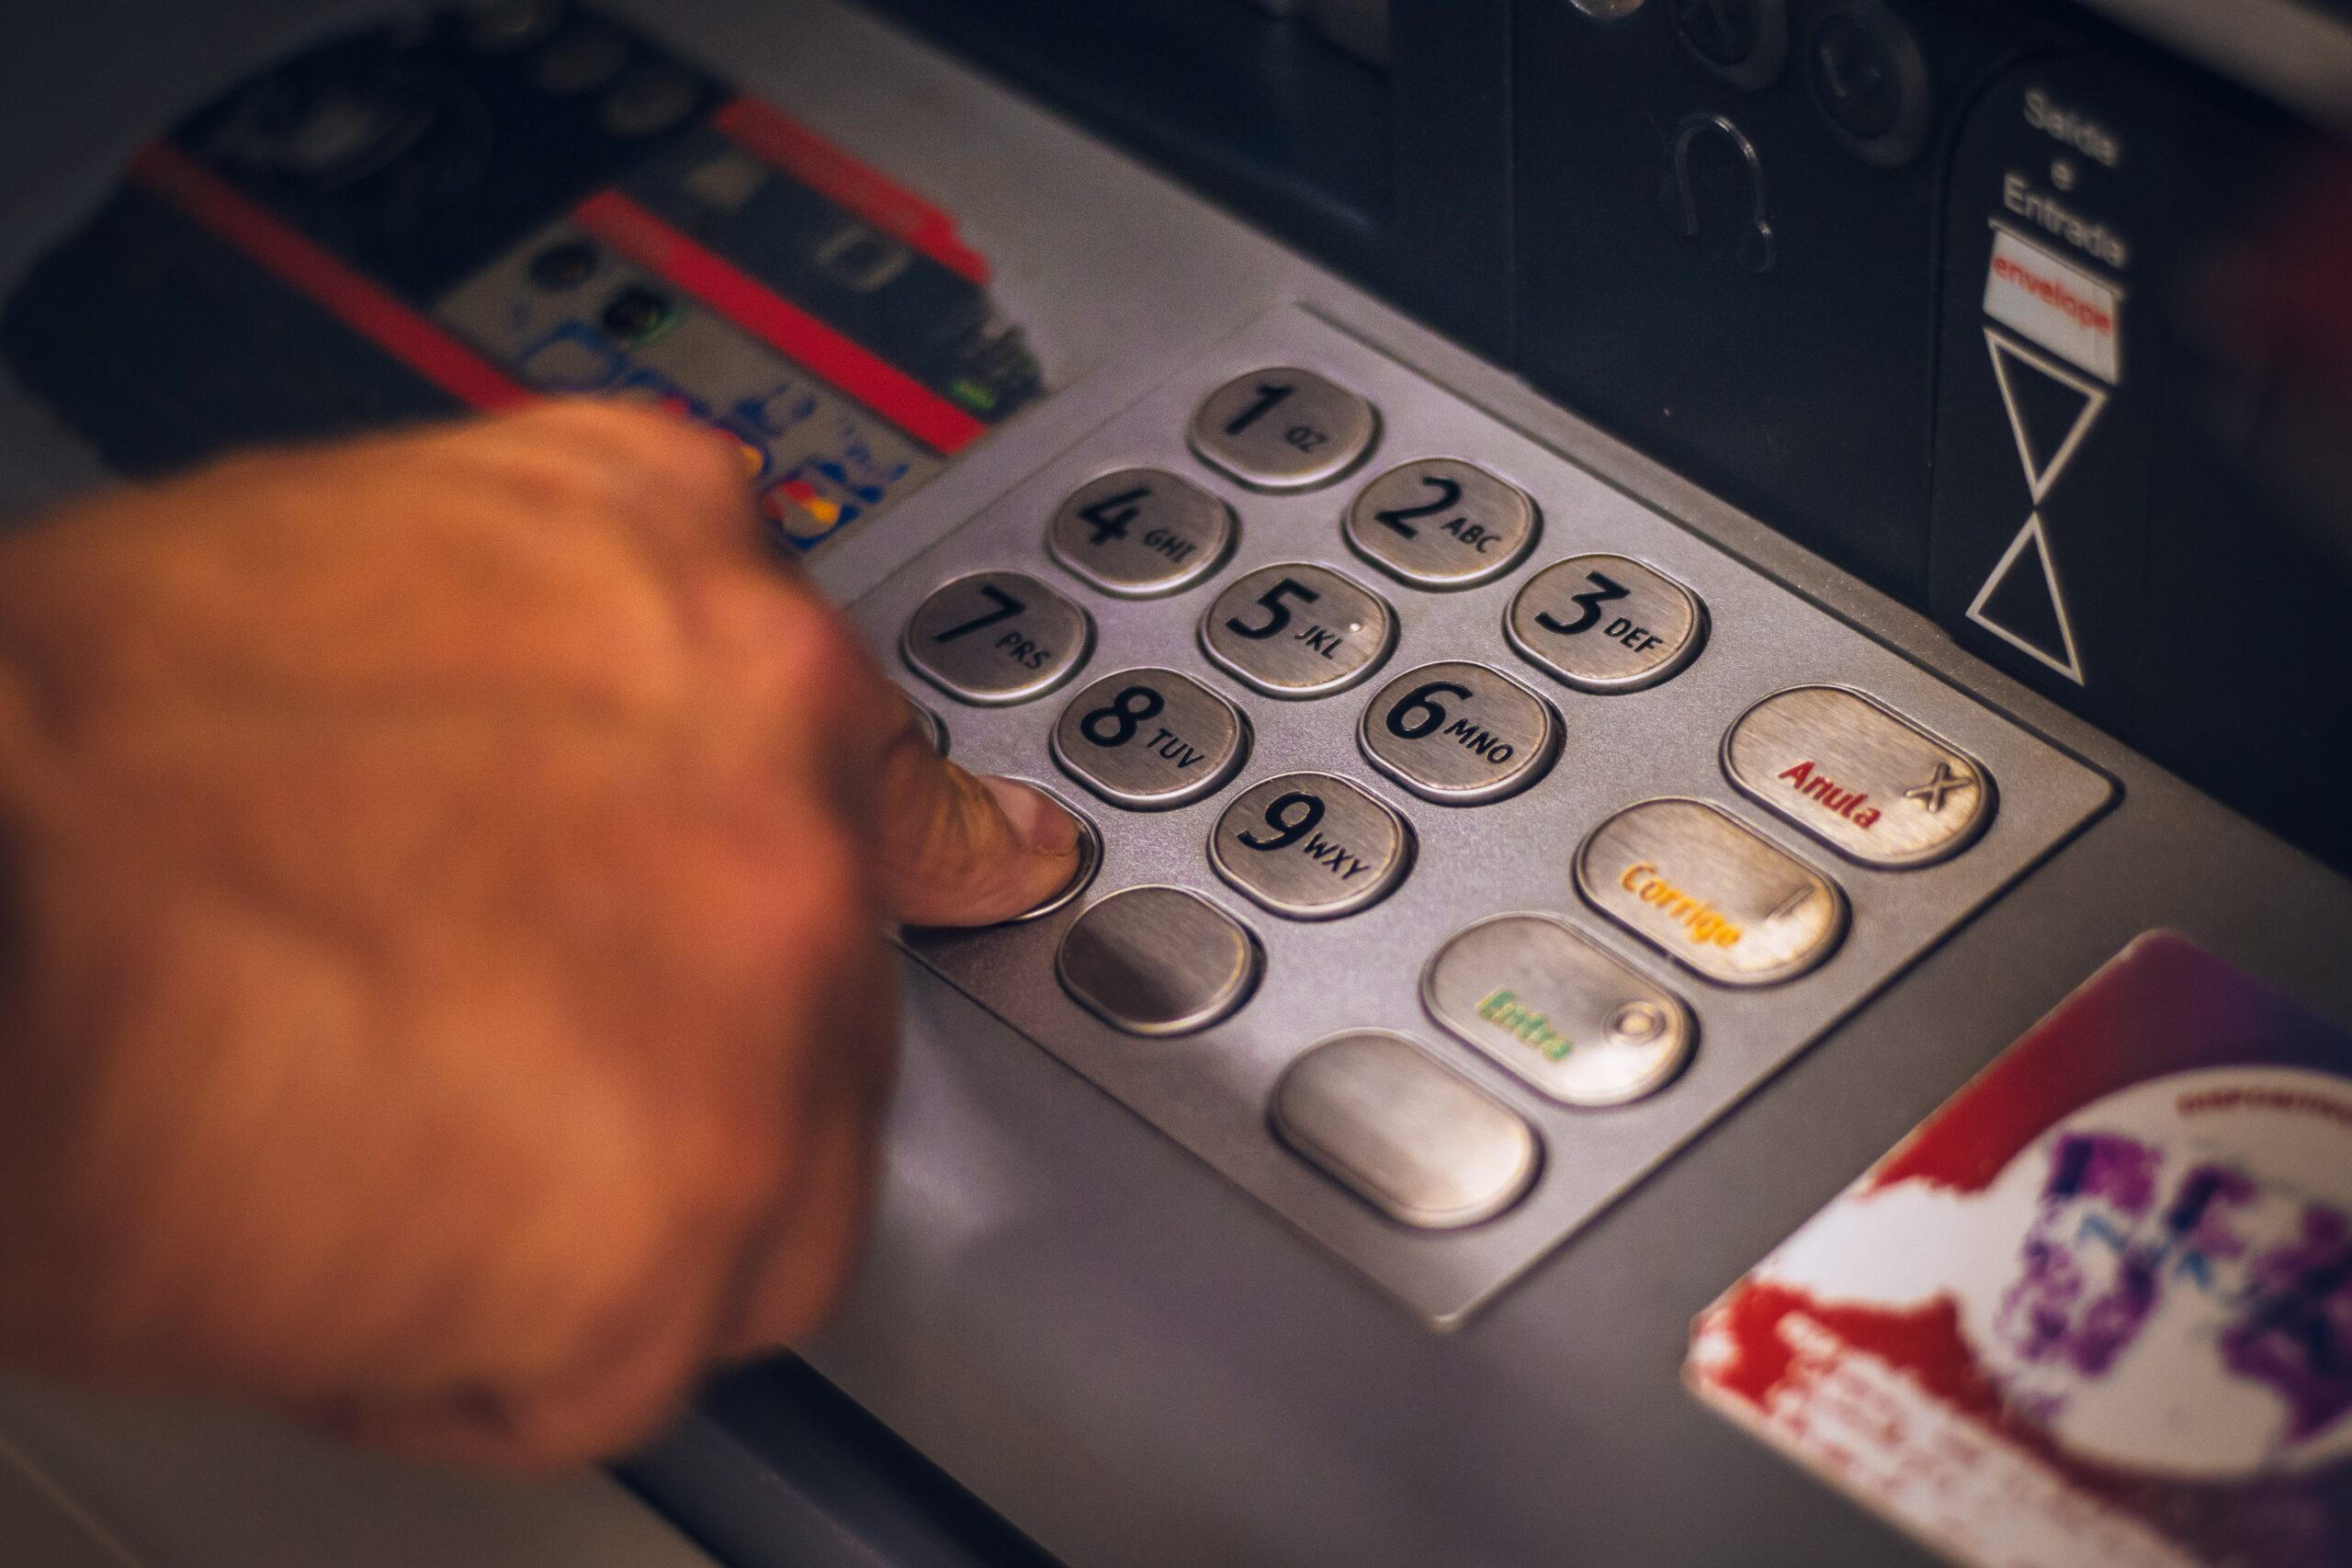 Man in the middle attack, atm hacking